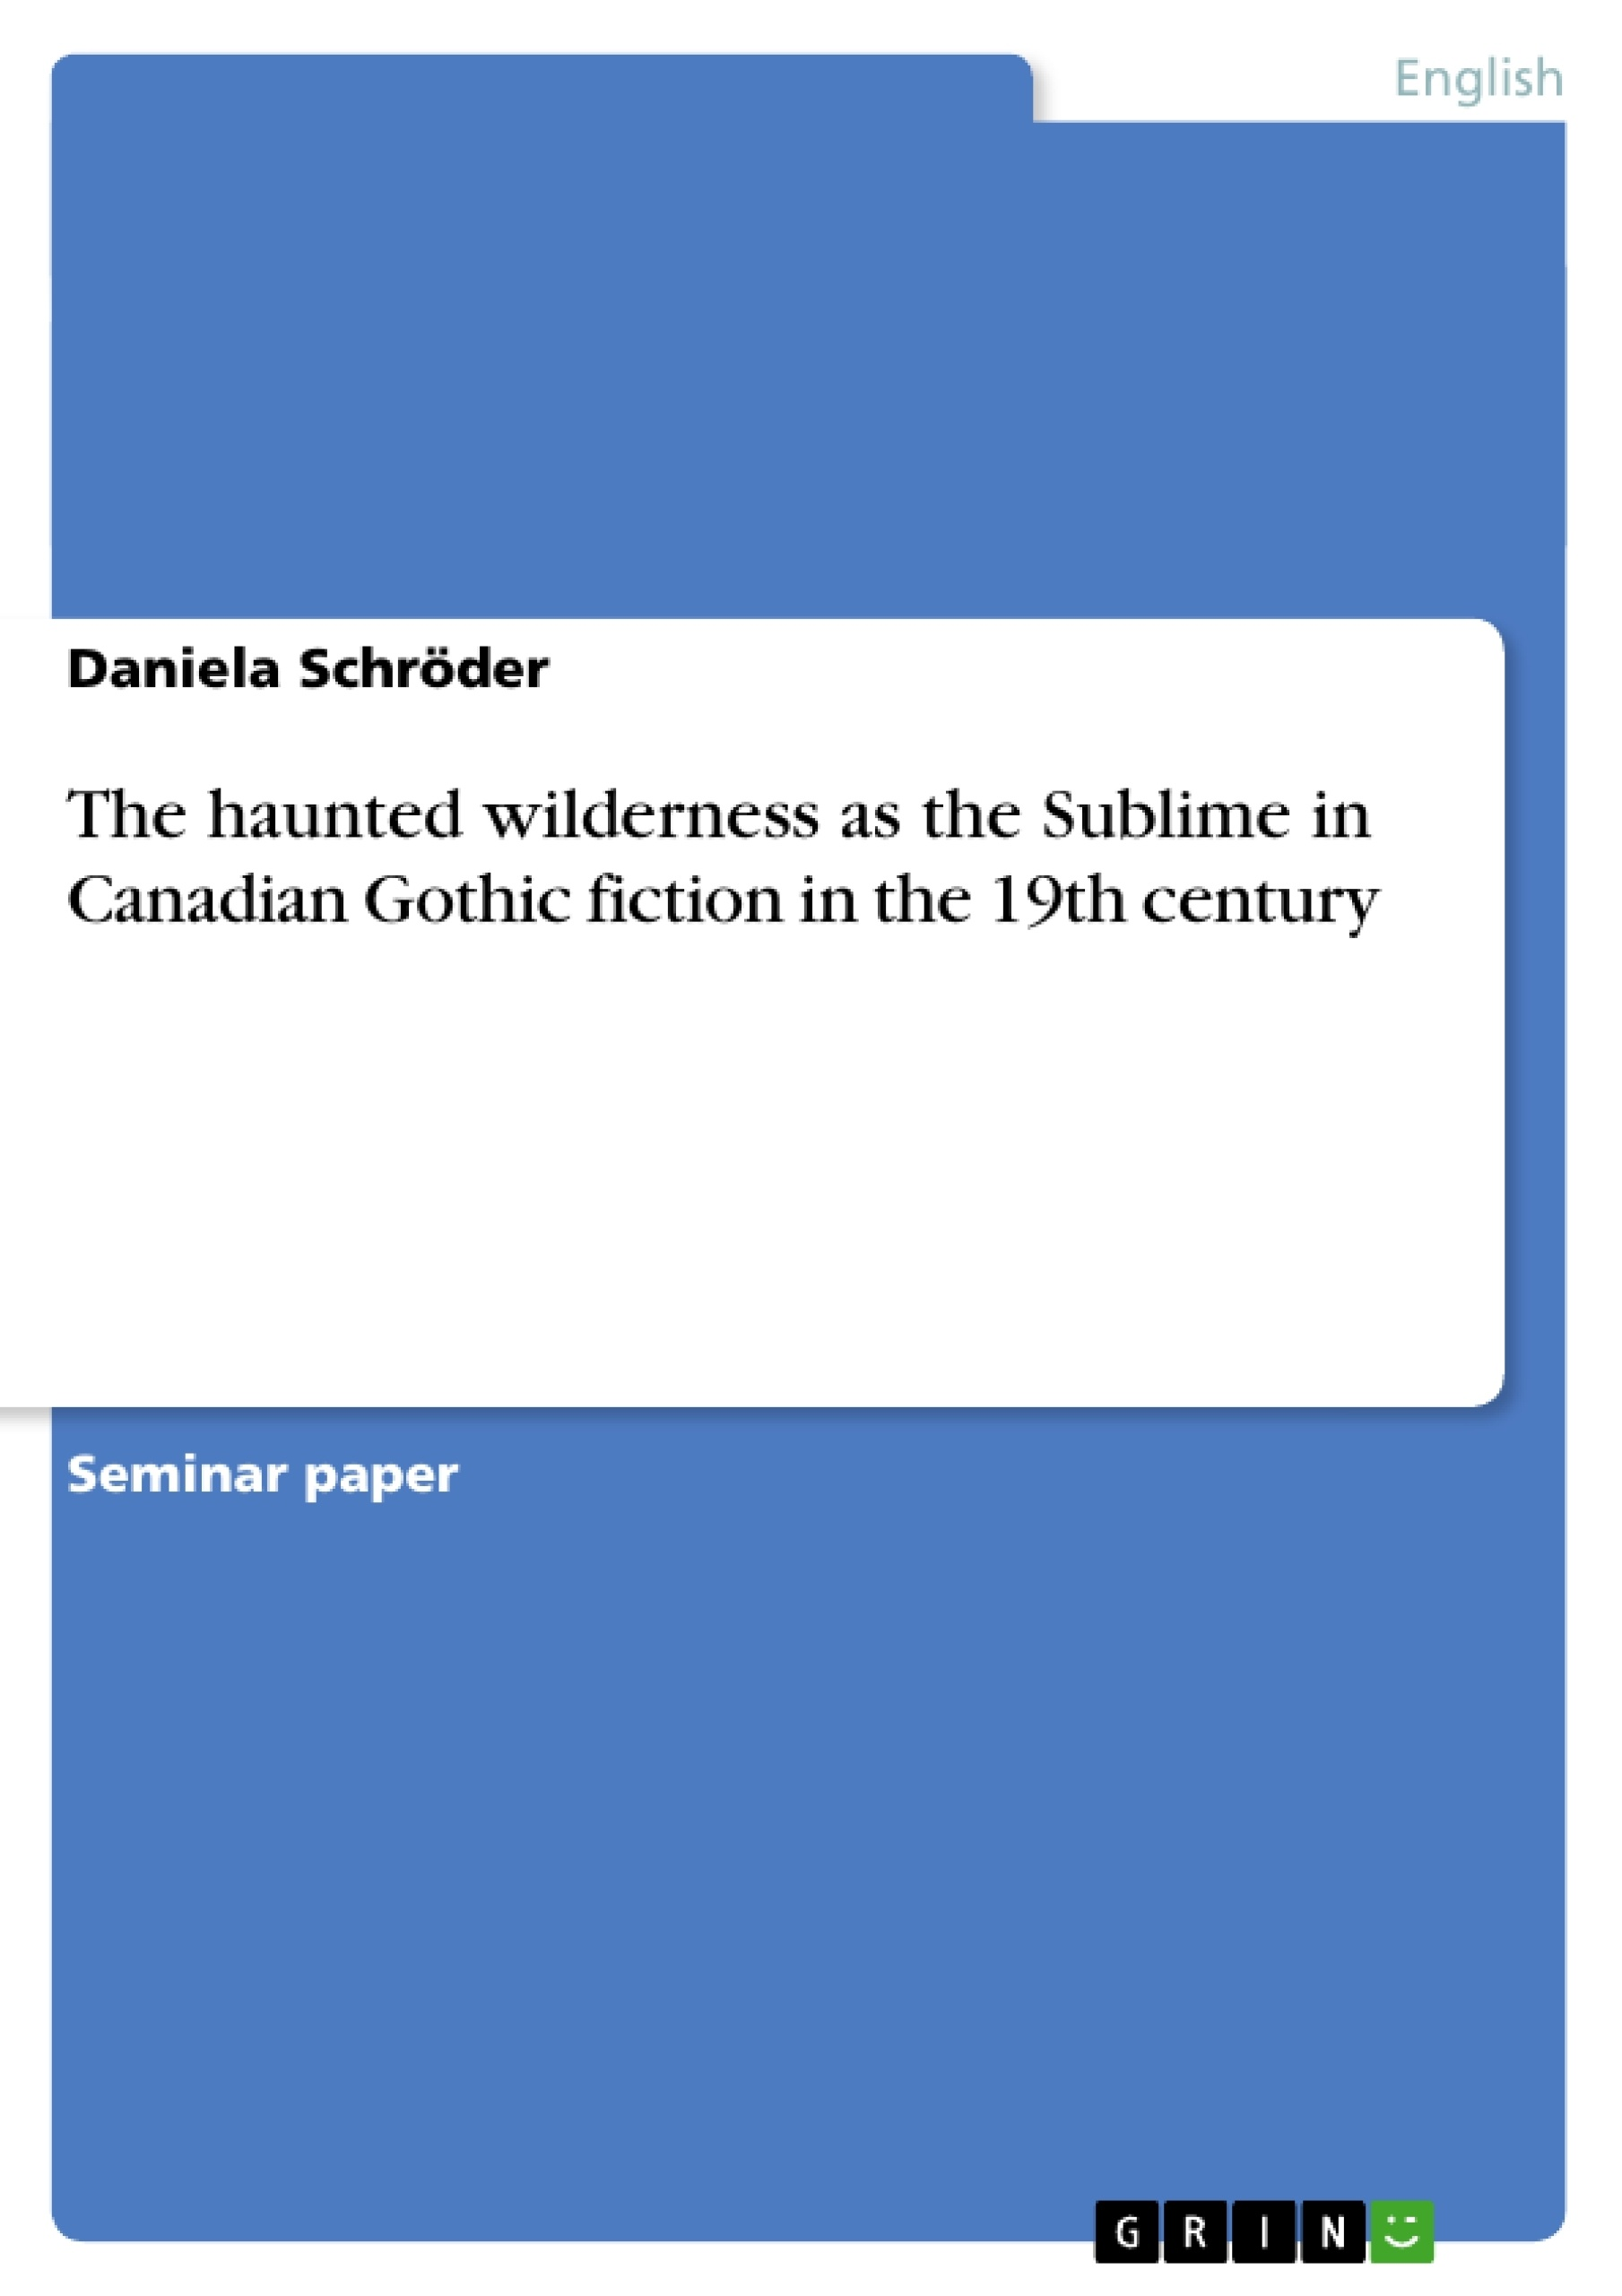 Title: The haunted wilderness as the Sublime in Canadian Gothic fiction in the 19th century